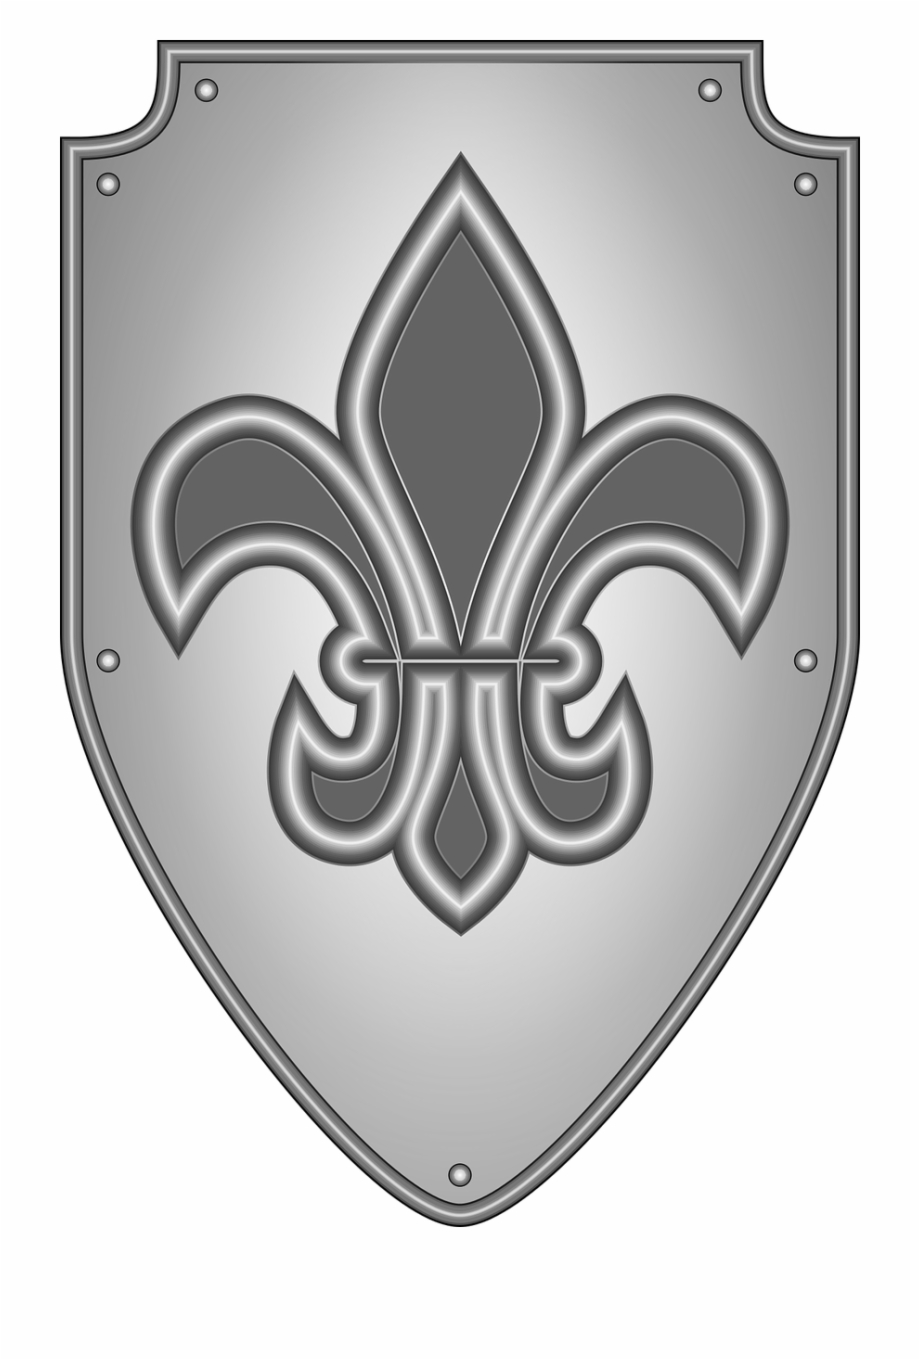 Heraldry Knight Medieval Shield Png Image.